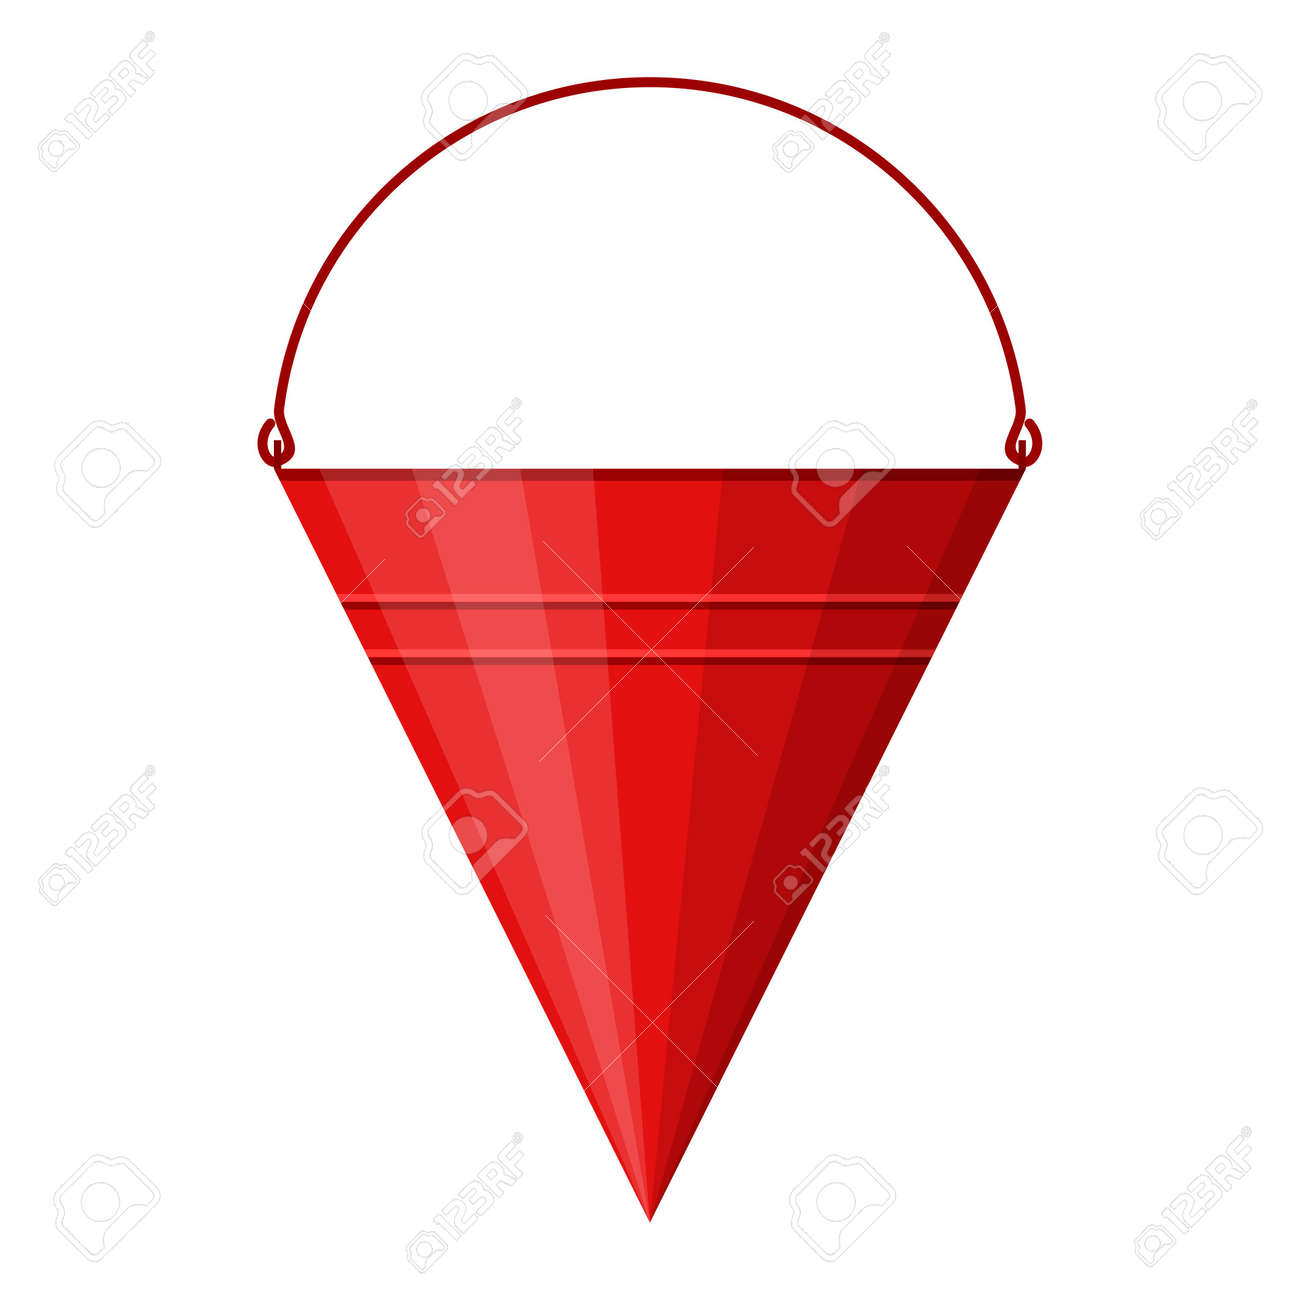 Red cone fire bucket for fire fighting isolated on white background. Bucket for combating small flames. Firefighter equipment. Vector illustration - 162713193